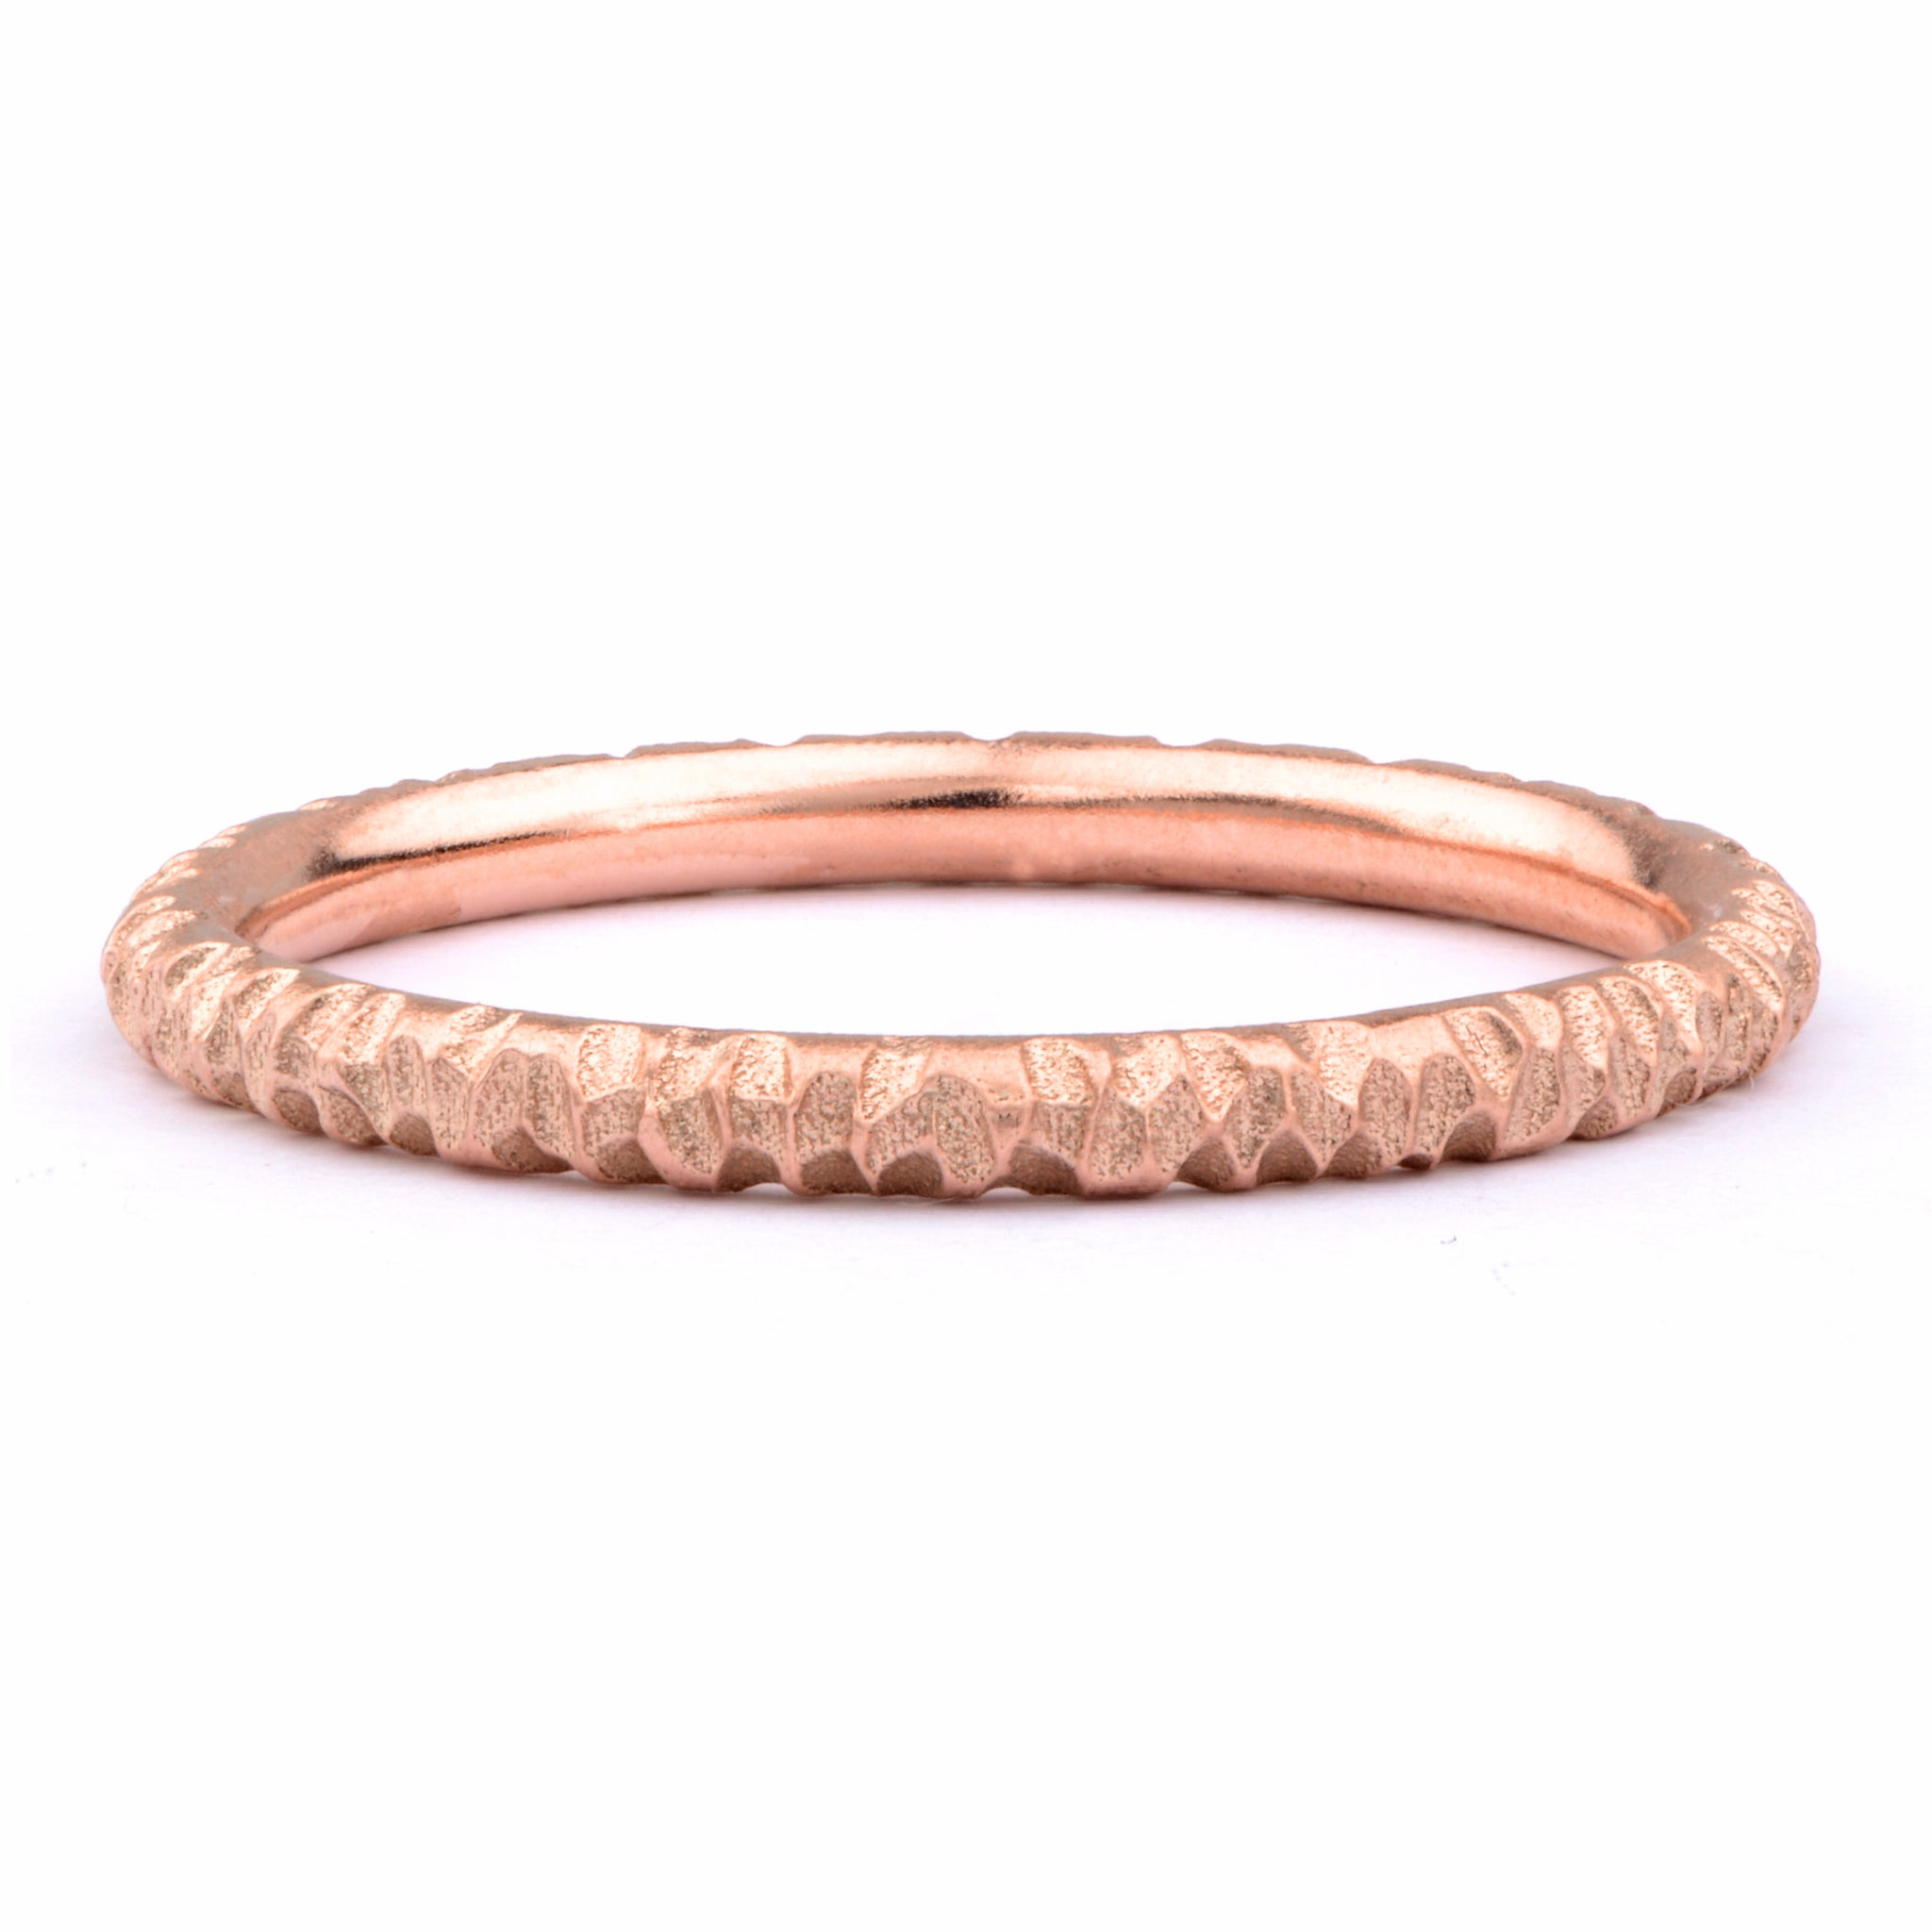 Textured 9ct Red Gold Wedding Band - James Newman Jewellery